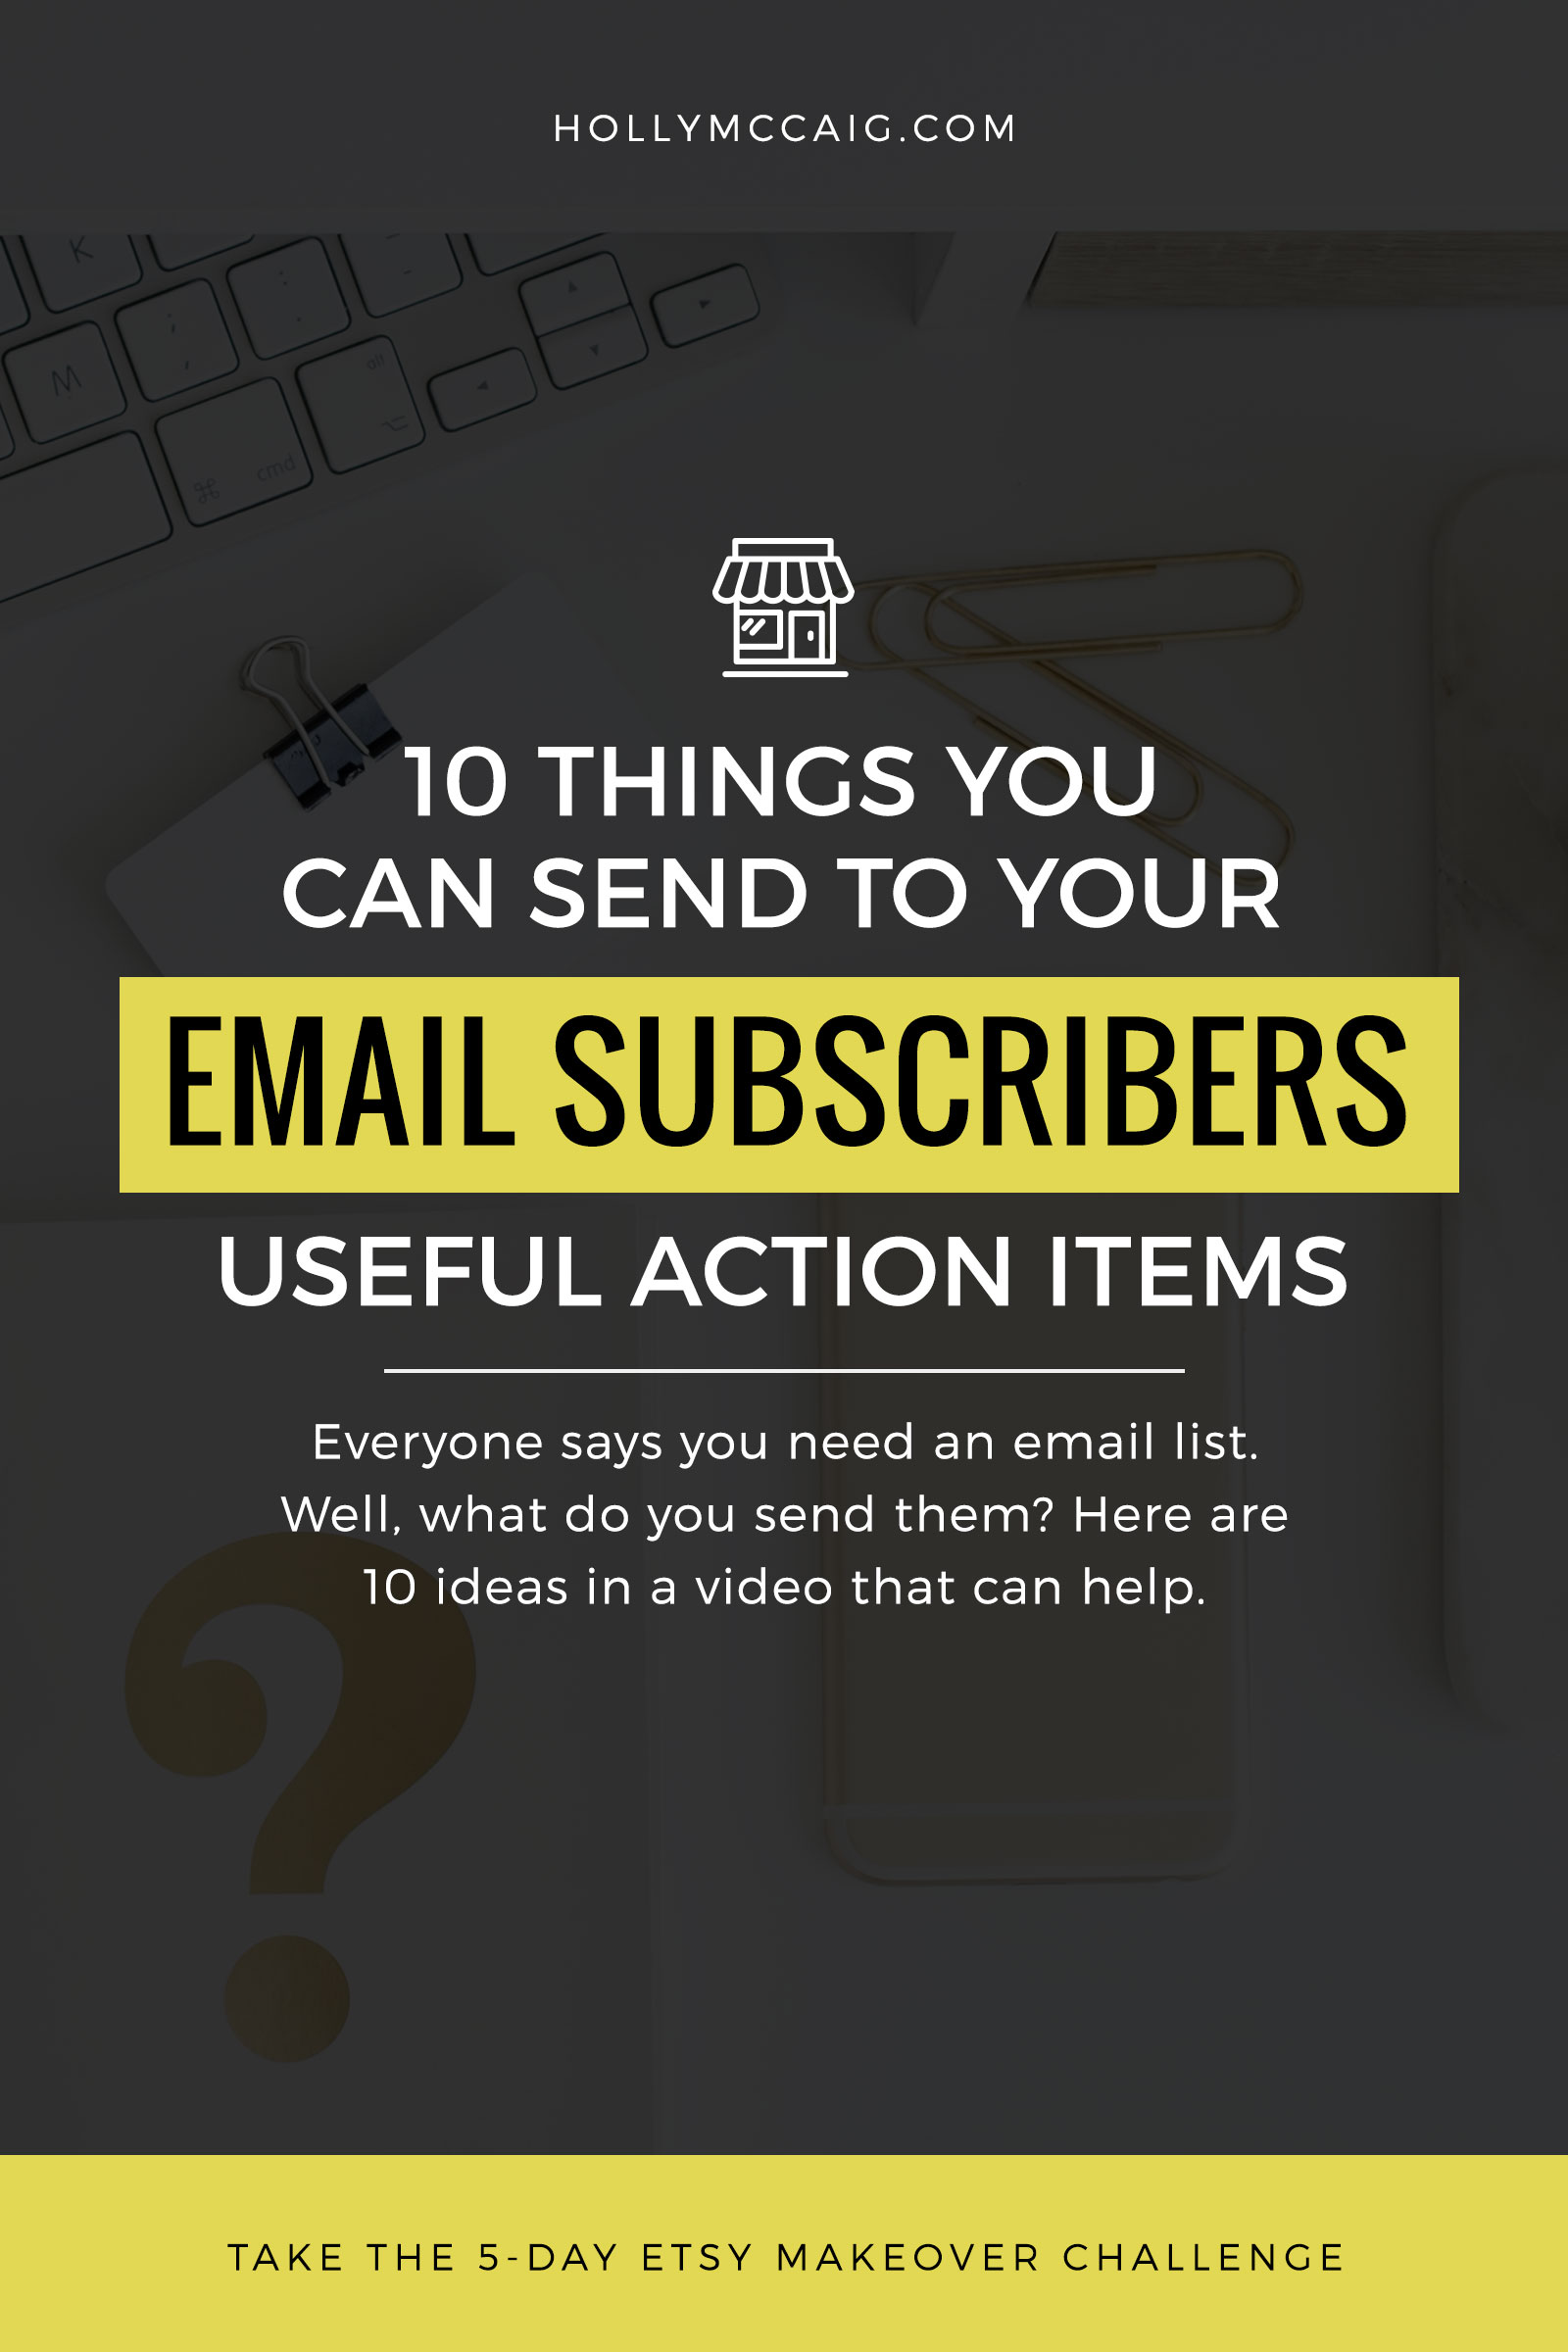 10 Things You Can Send to Your Email Subscribers. For years, as an online business owner, I have collected emails for the sole purpose of just promoting products and deals. I never really thought that maybe there was a better use of an email list until last year. I mean, what should I send to my email subscribers? Watch my video and get a free opt-in ideas checklist.